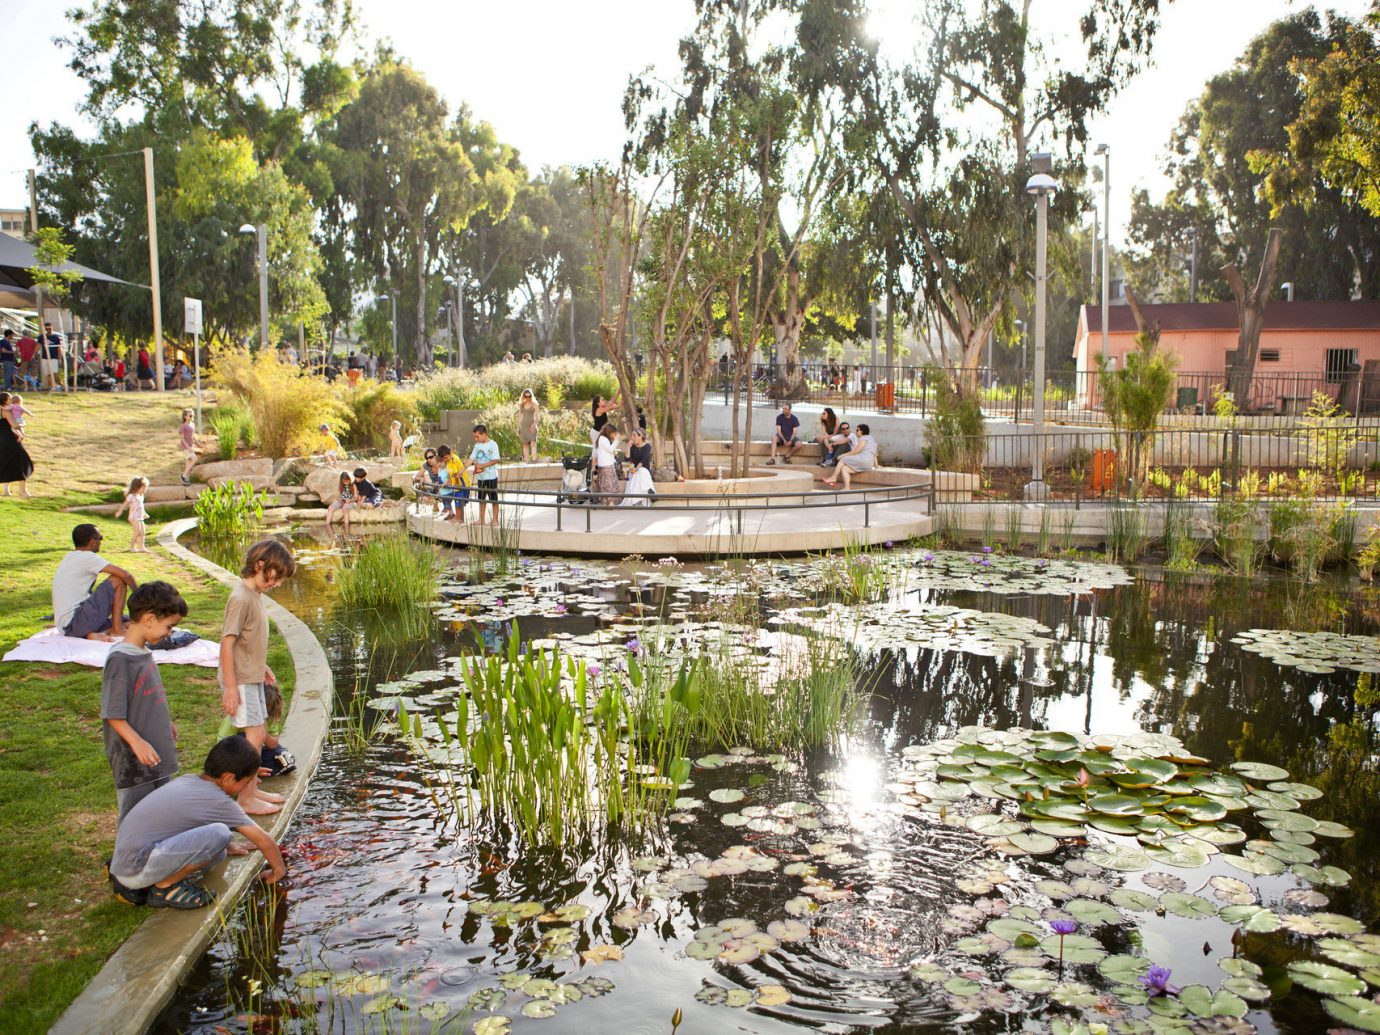 Family activities Outdoor Activities Parks pond tree outdoor sky grass Nature Garden water water feature fountain plaza botanical garden park town square backyard Resort